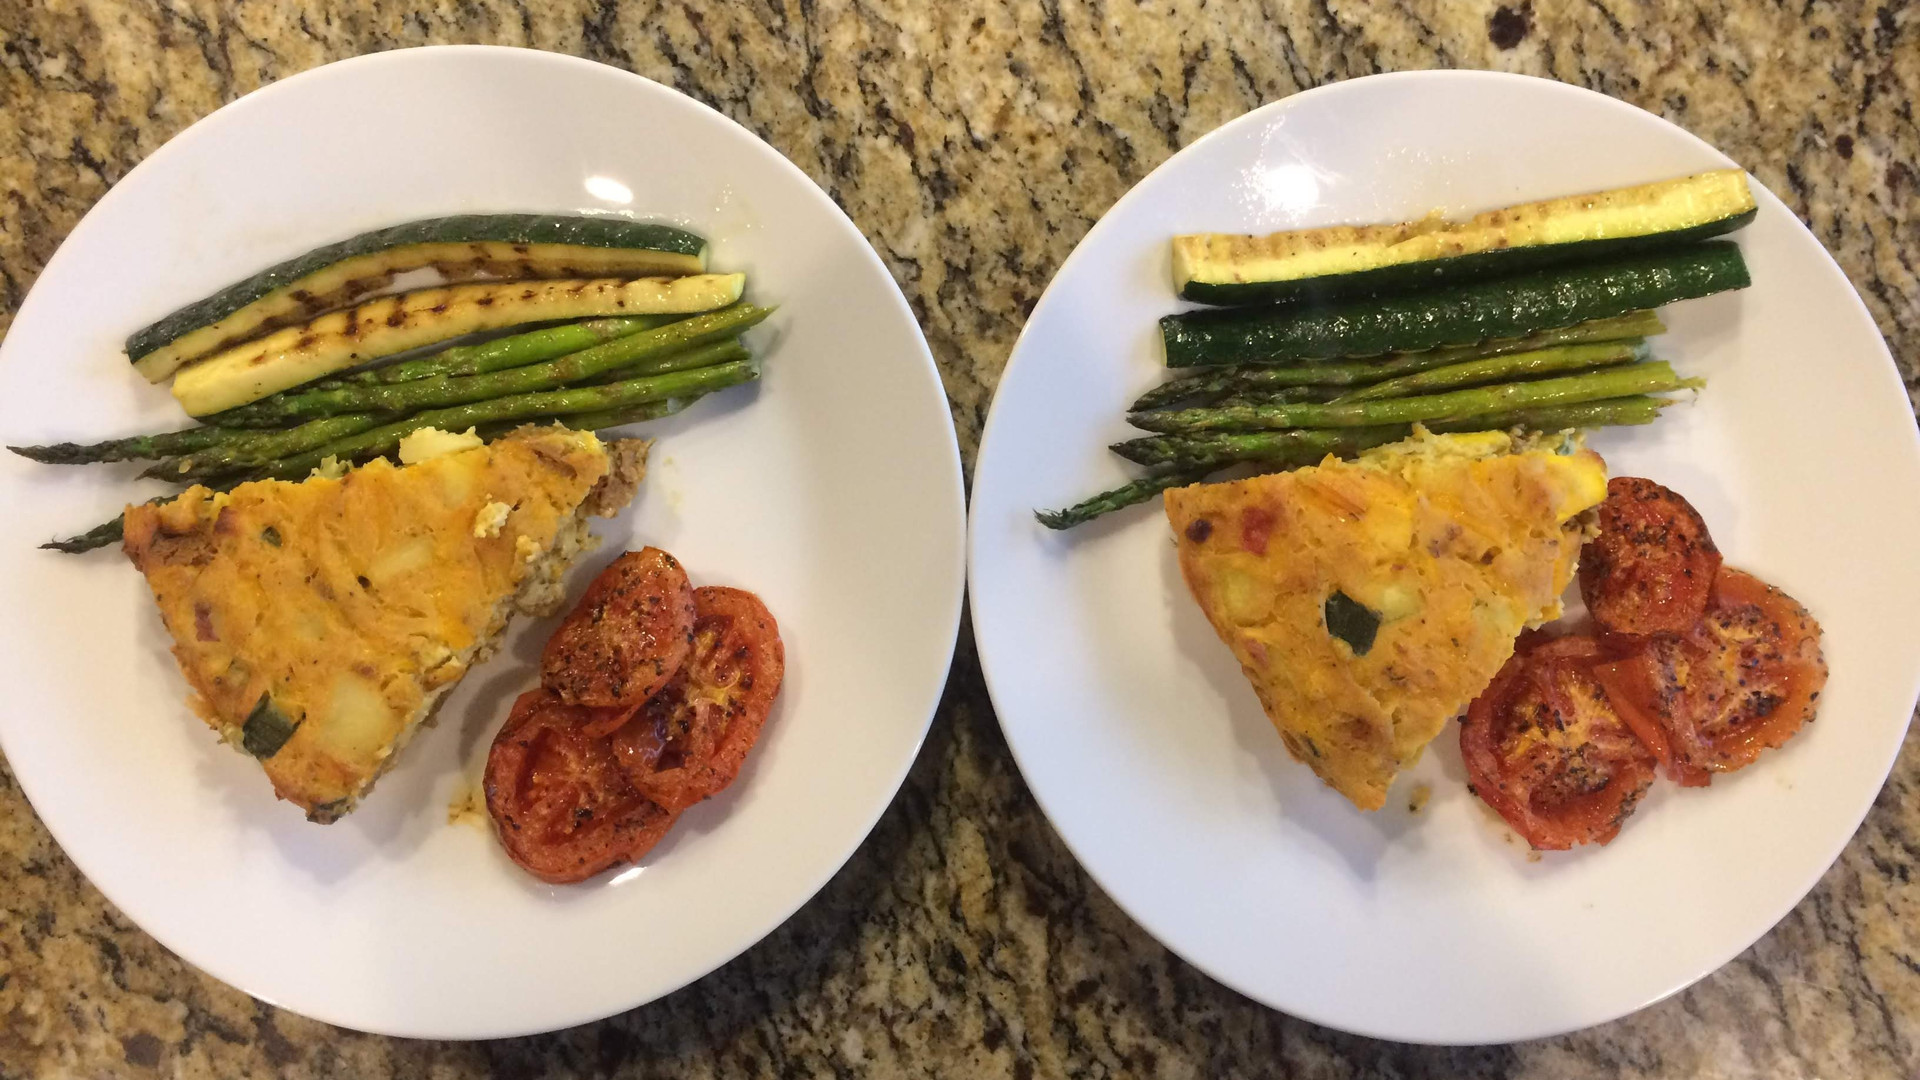 Sundogs Frittata, grilled asparagus and zucchini, roasted tomatoes